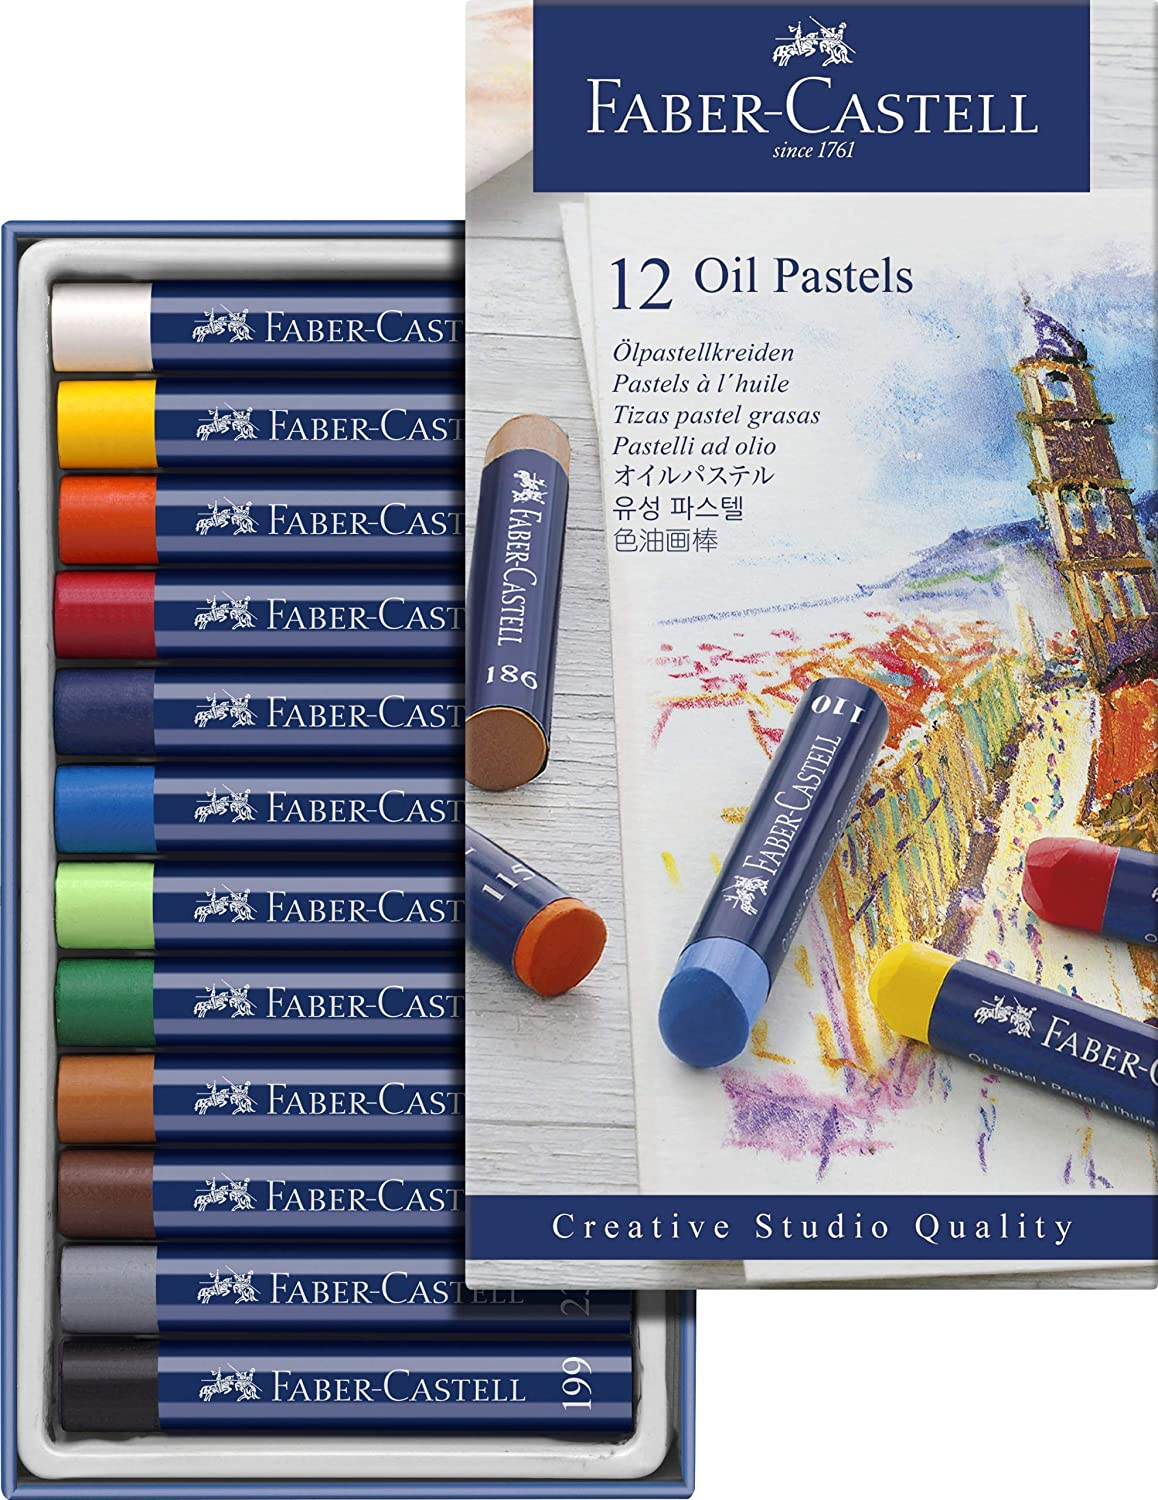 Image For FABER-CASTELL OIL PASTELS 12 PACK